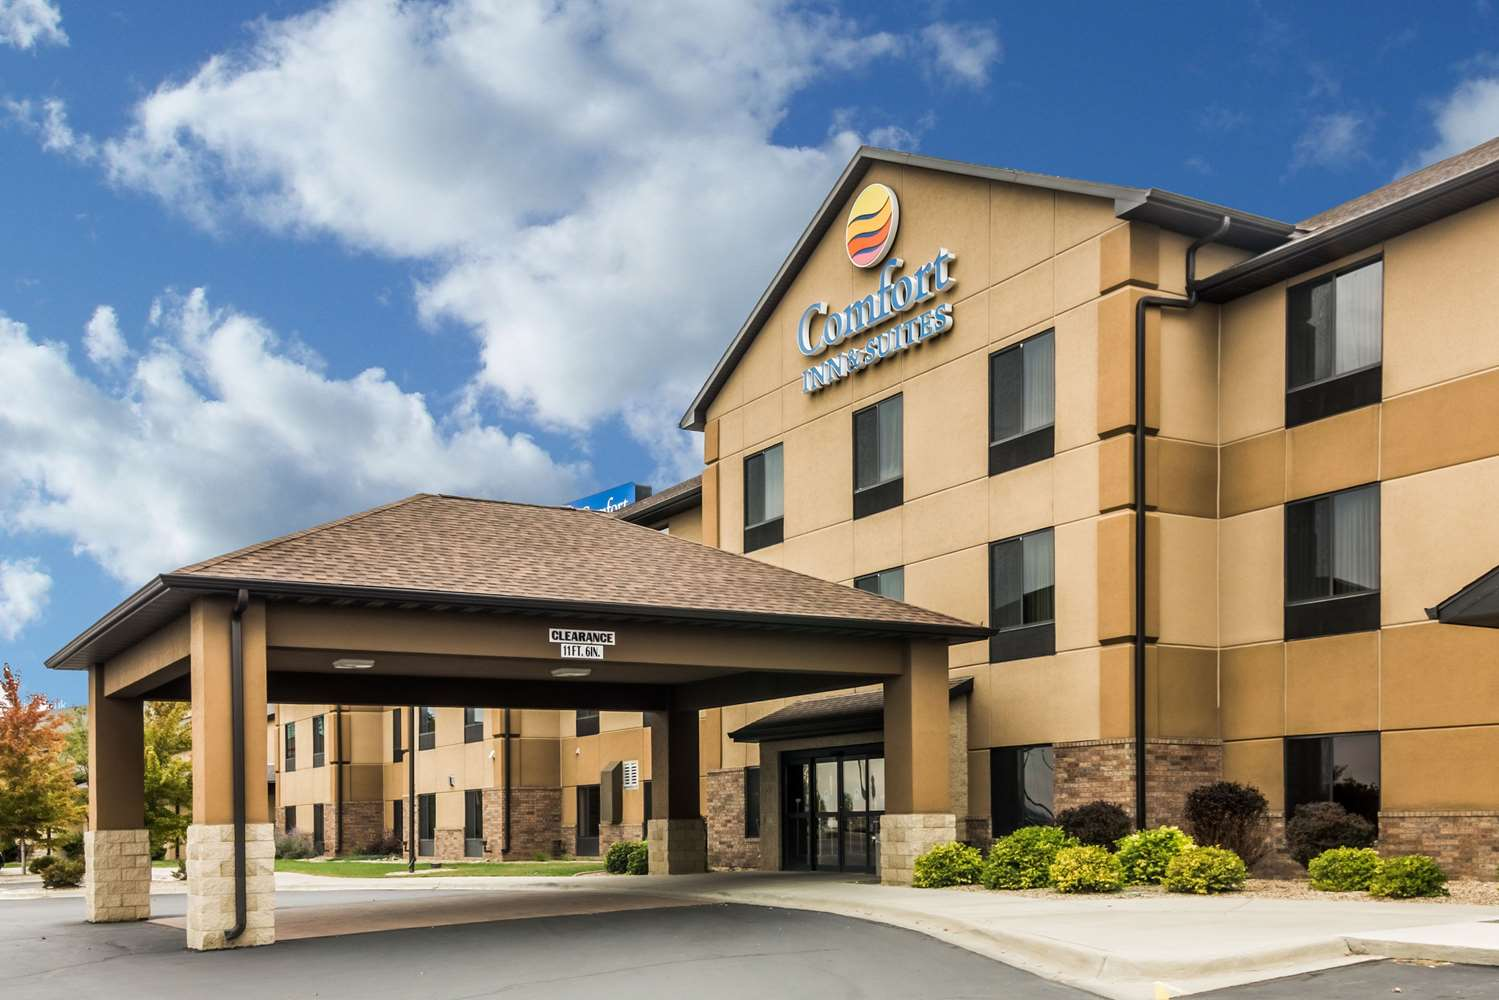 Comfort Inn & Suites Mitchell